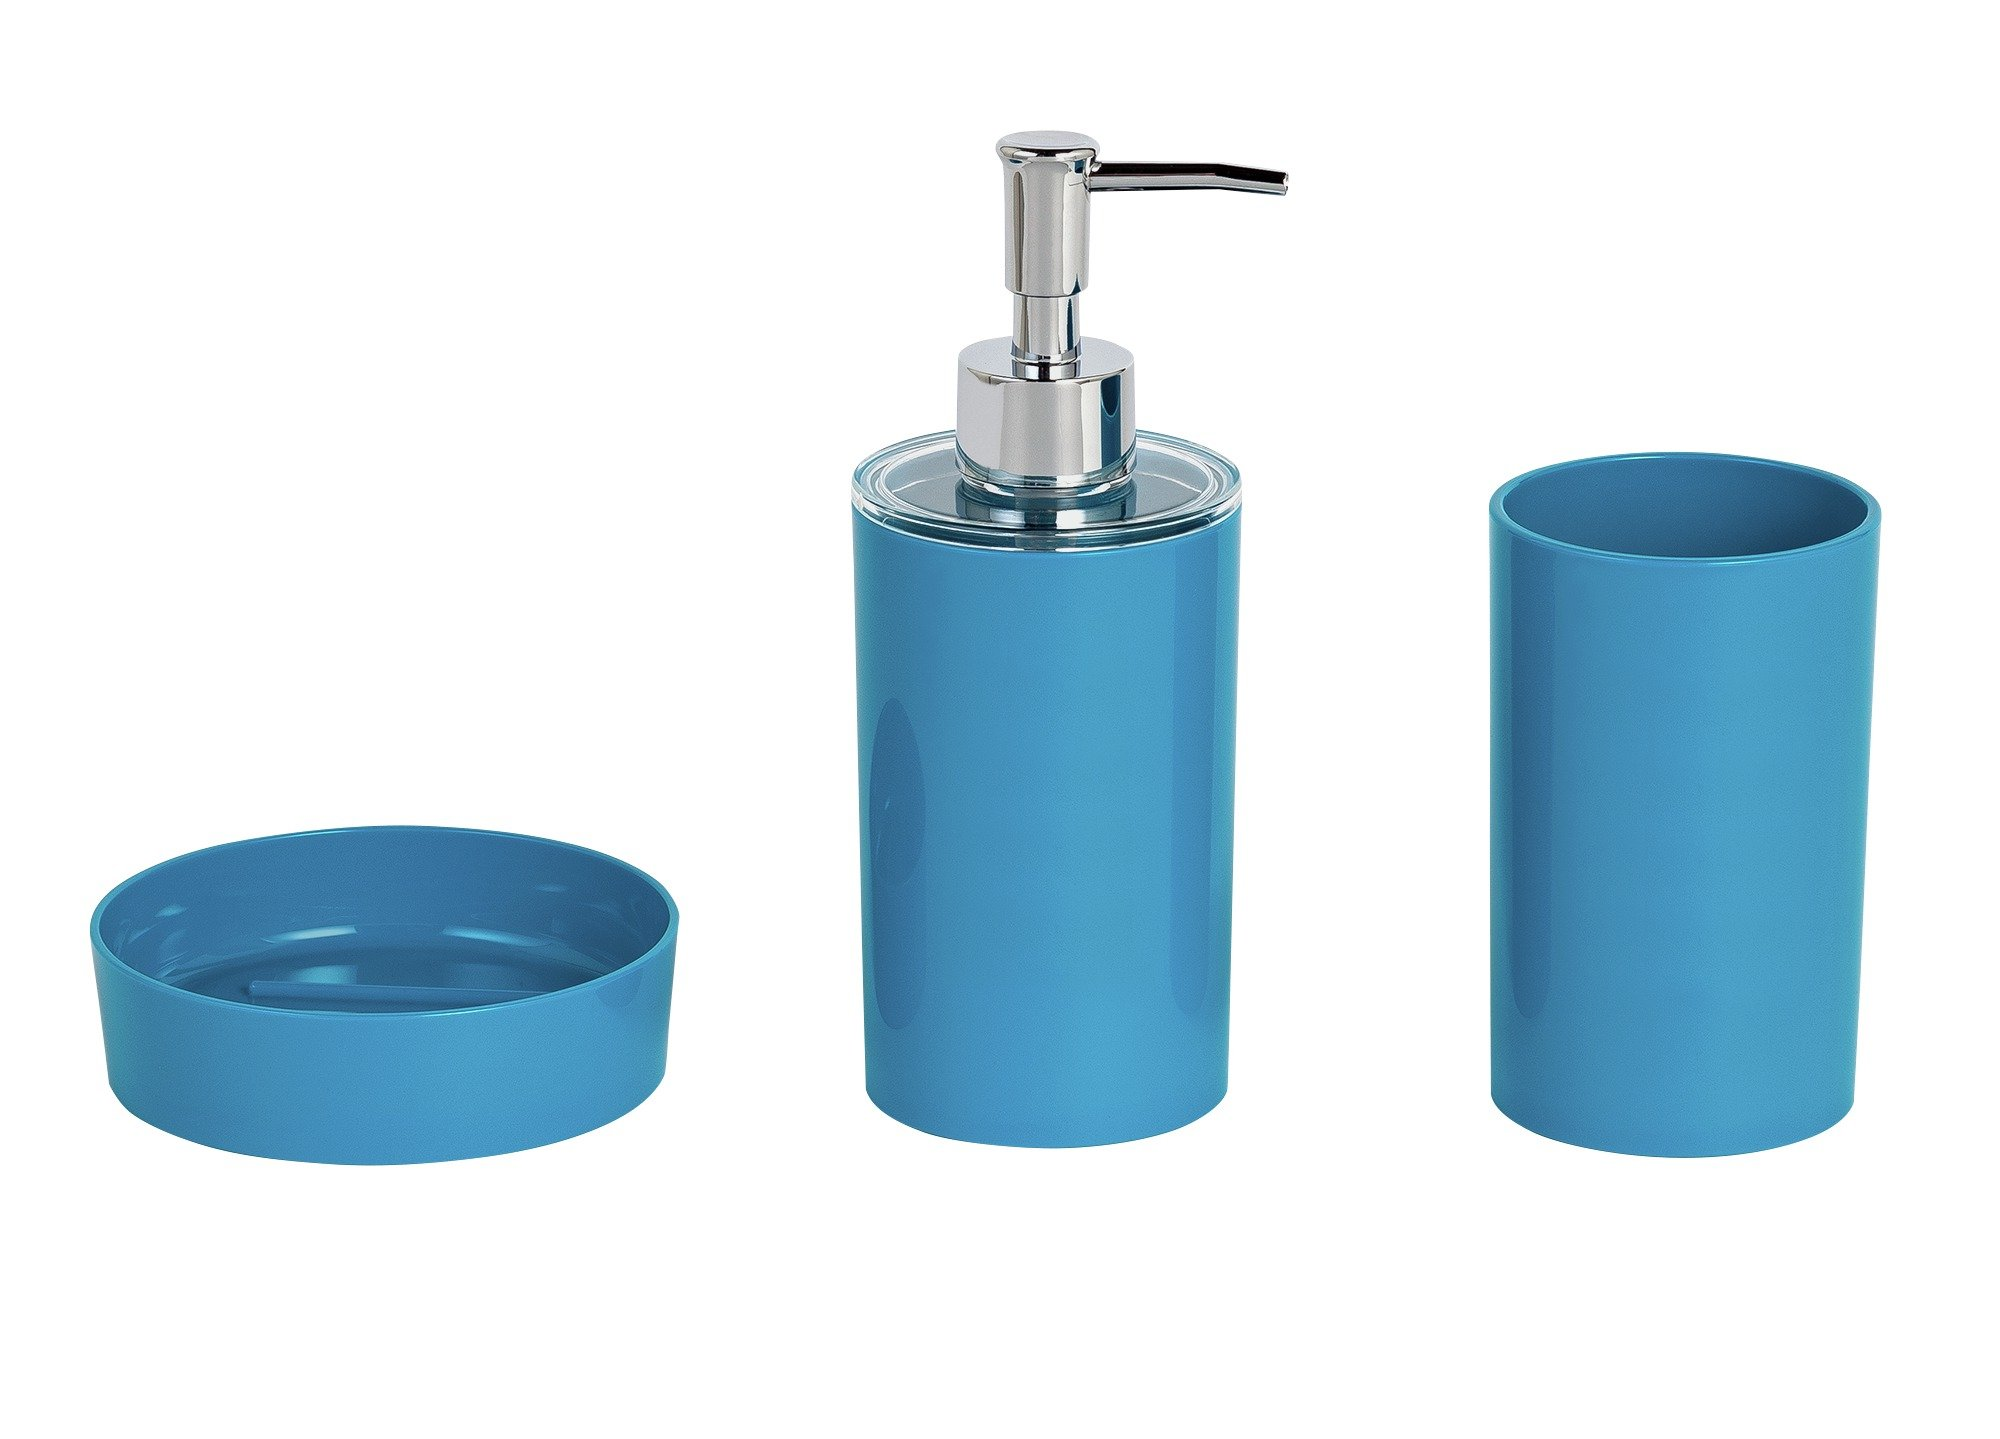 Colourmatch 3 piece bathroom accessory set teal 7036723 for Bathroom accessories argos